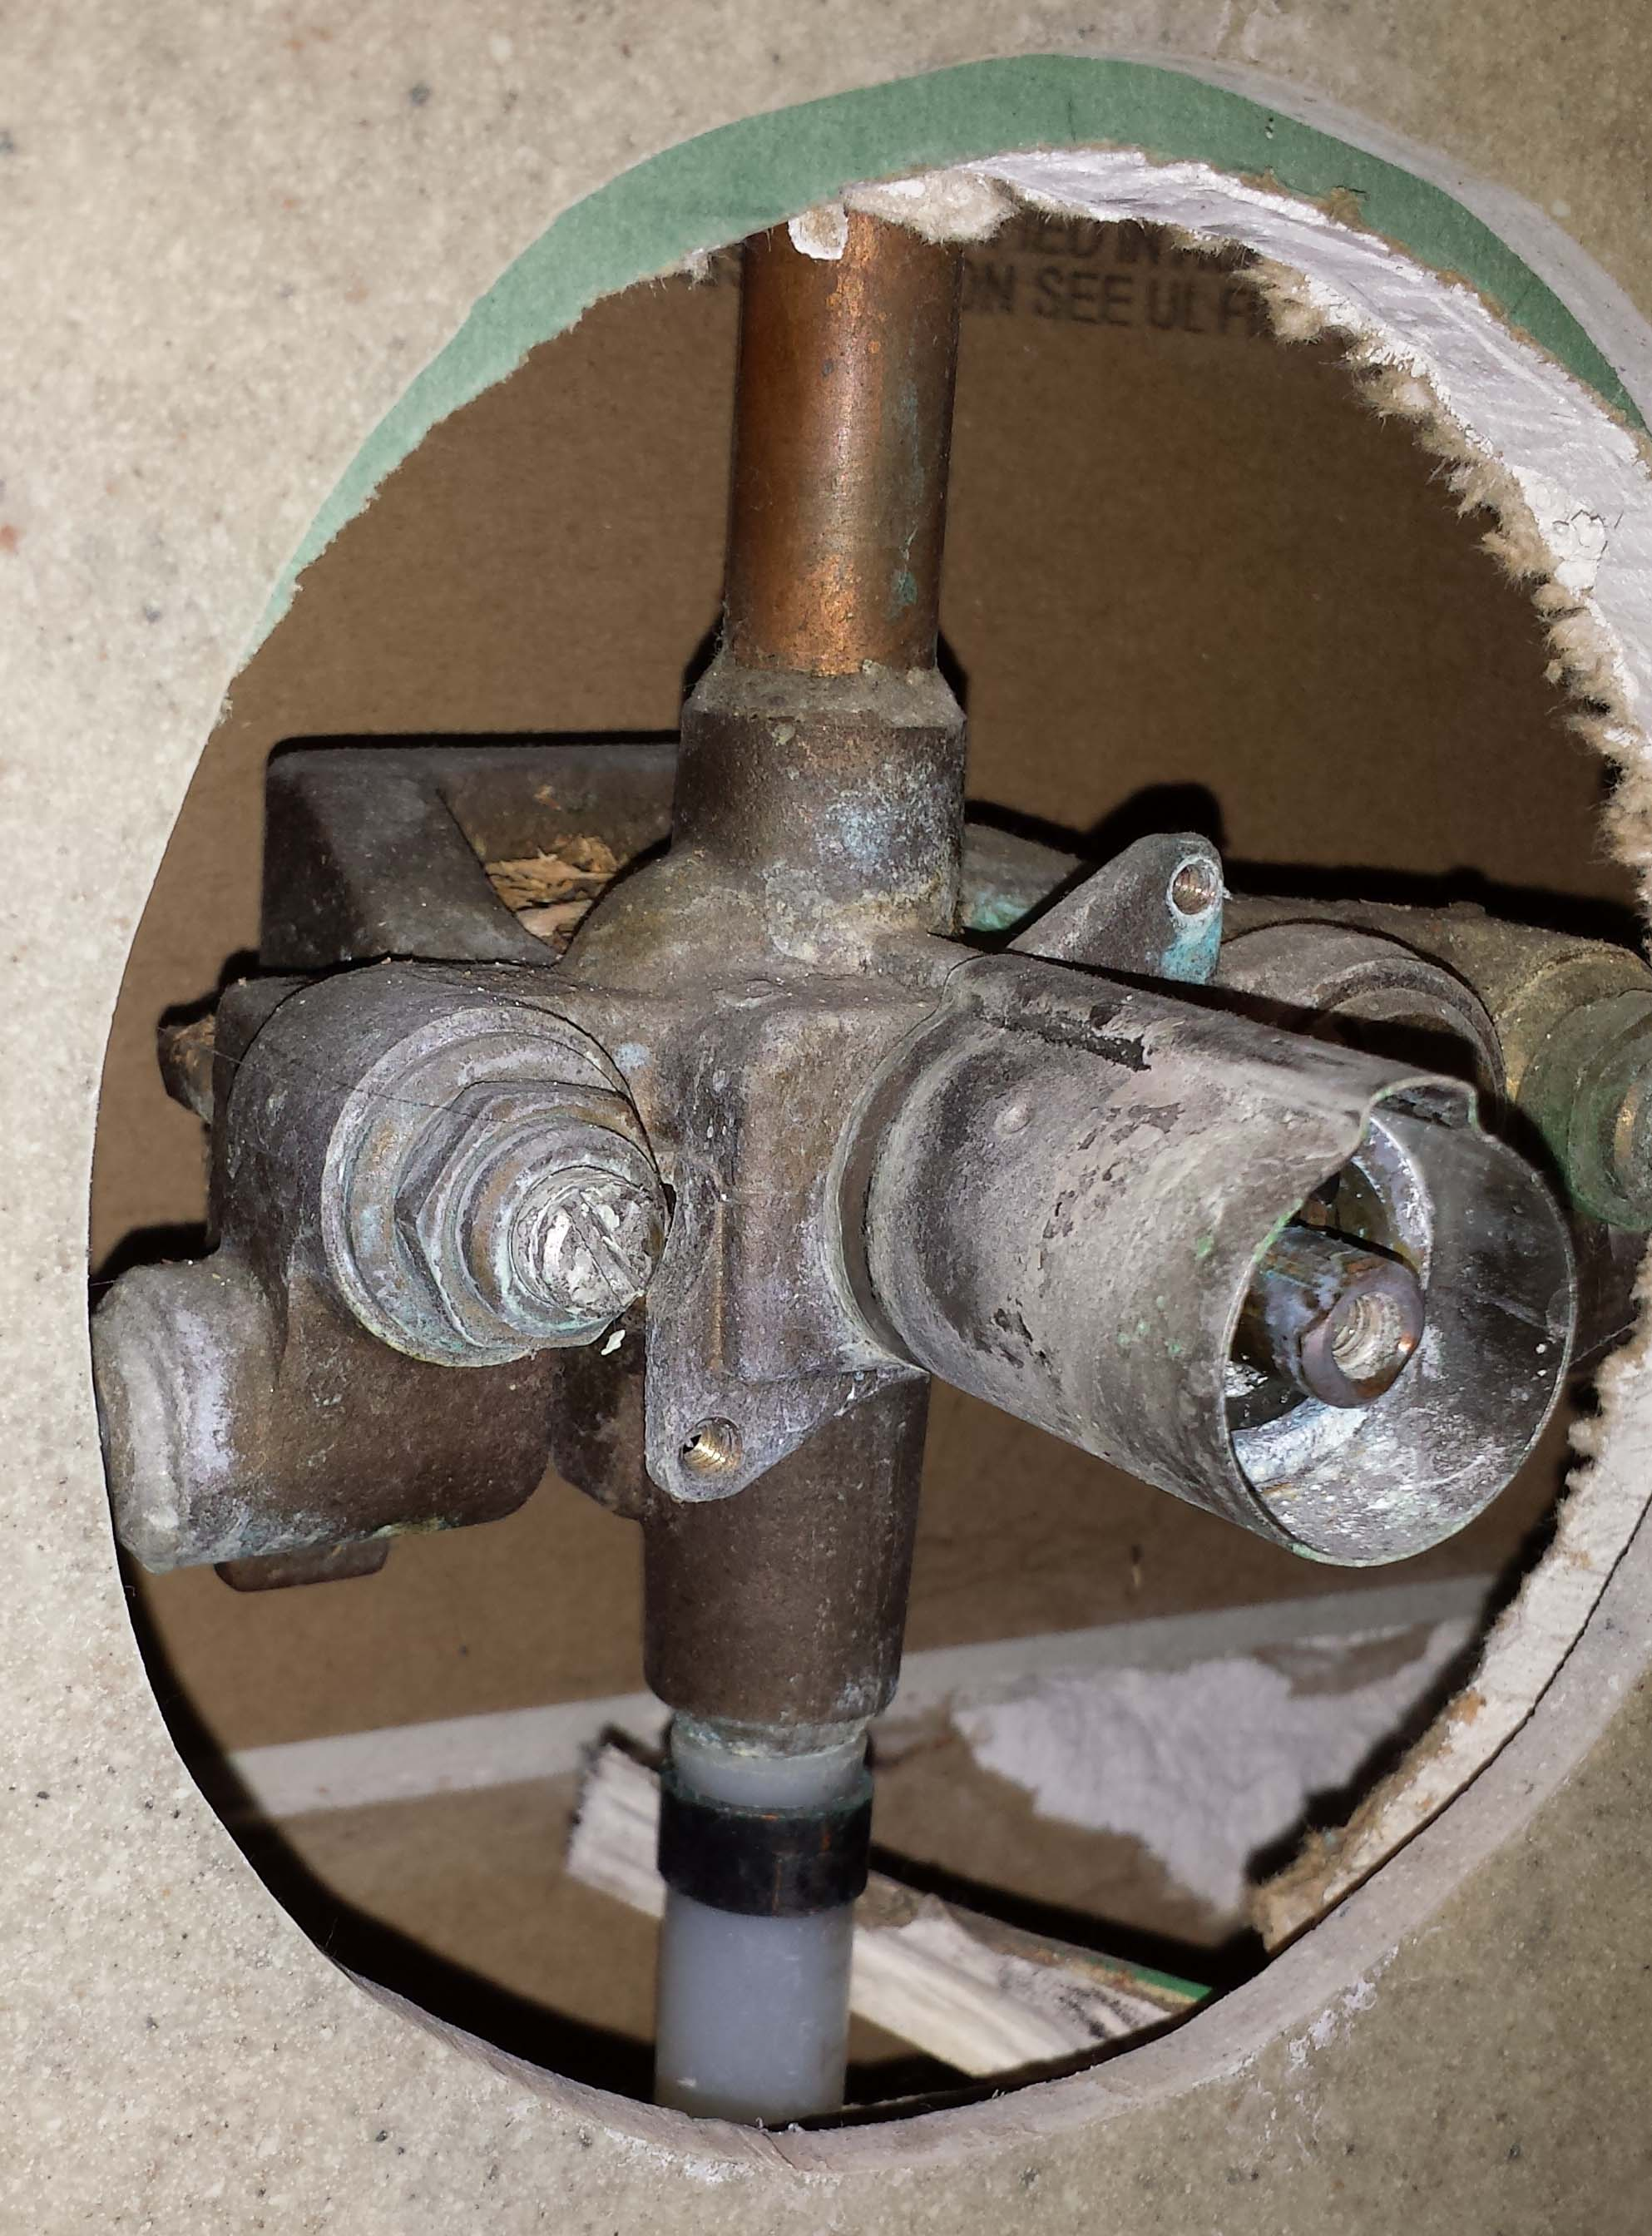 plumbing  How can I support an already installed shower